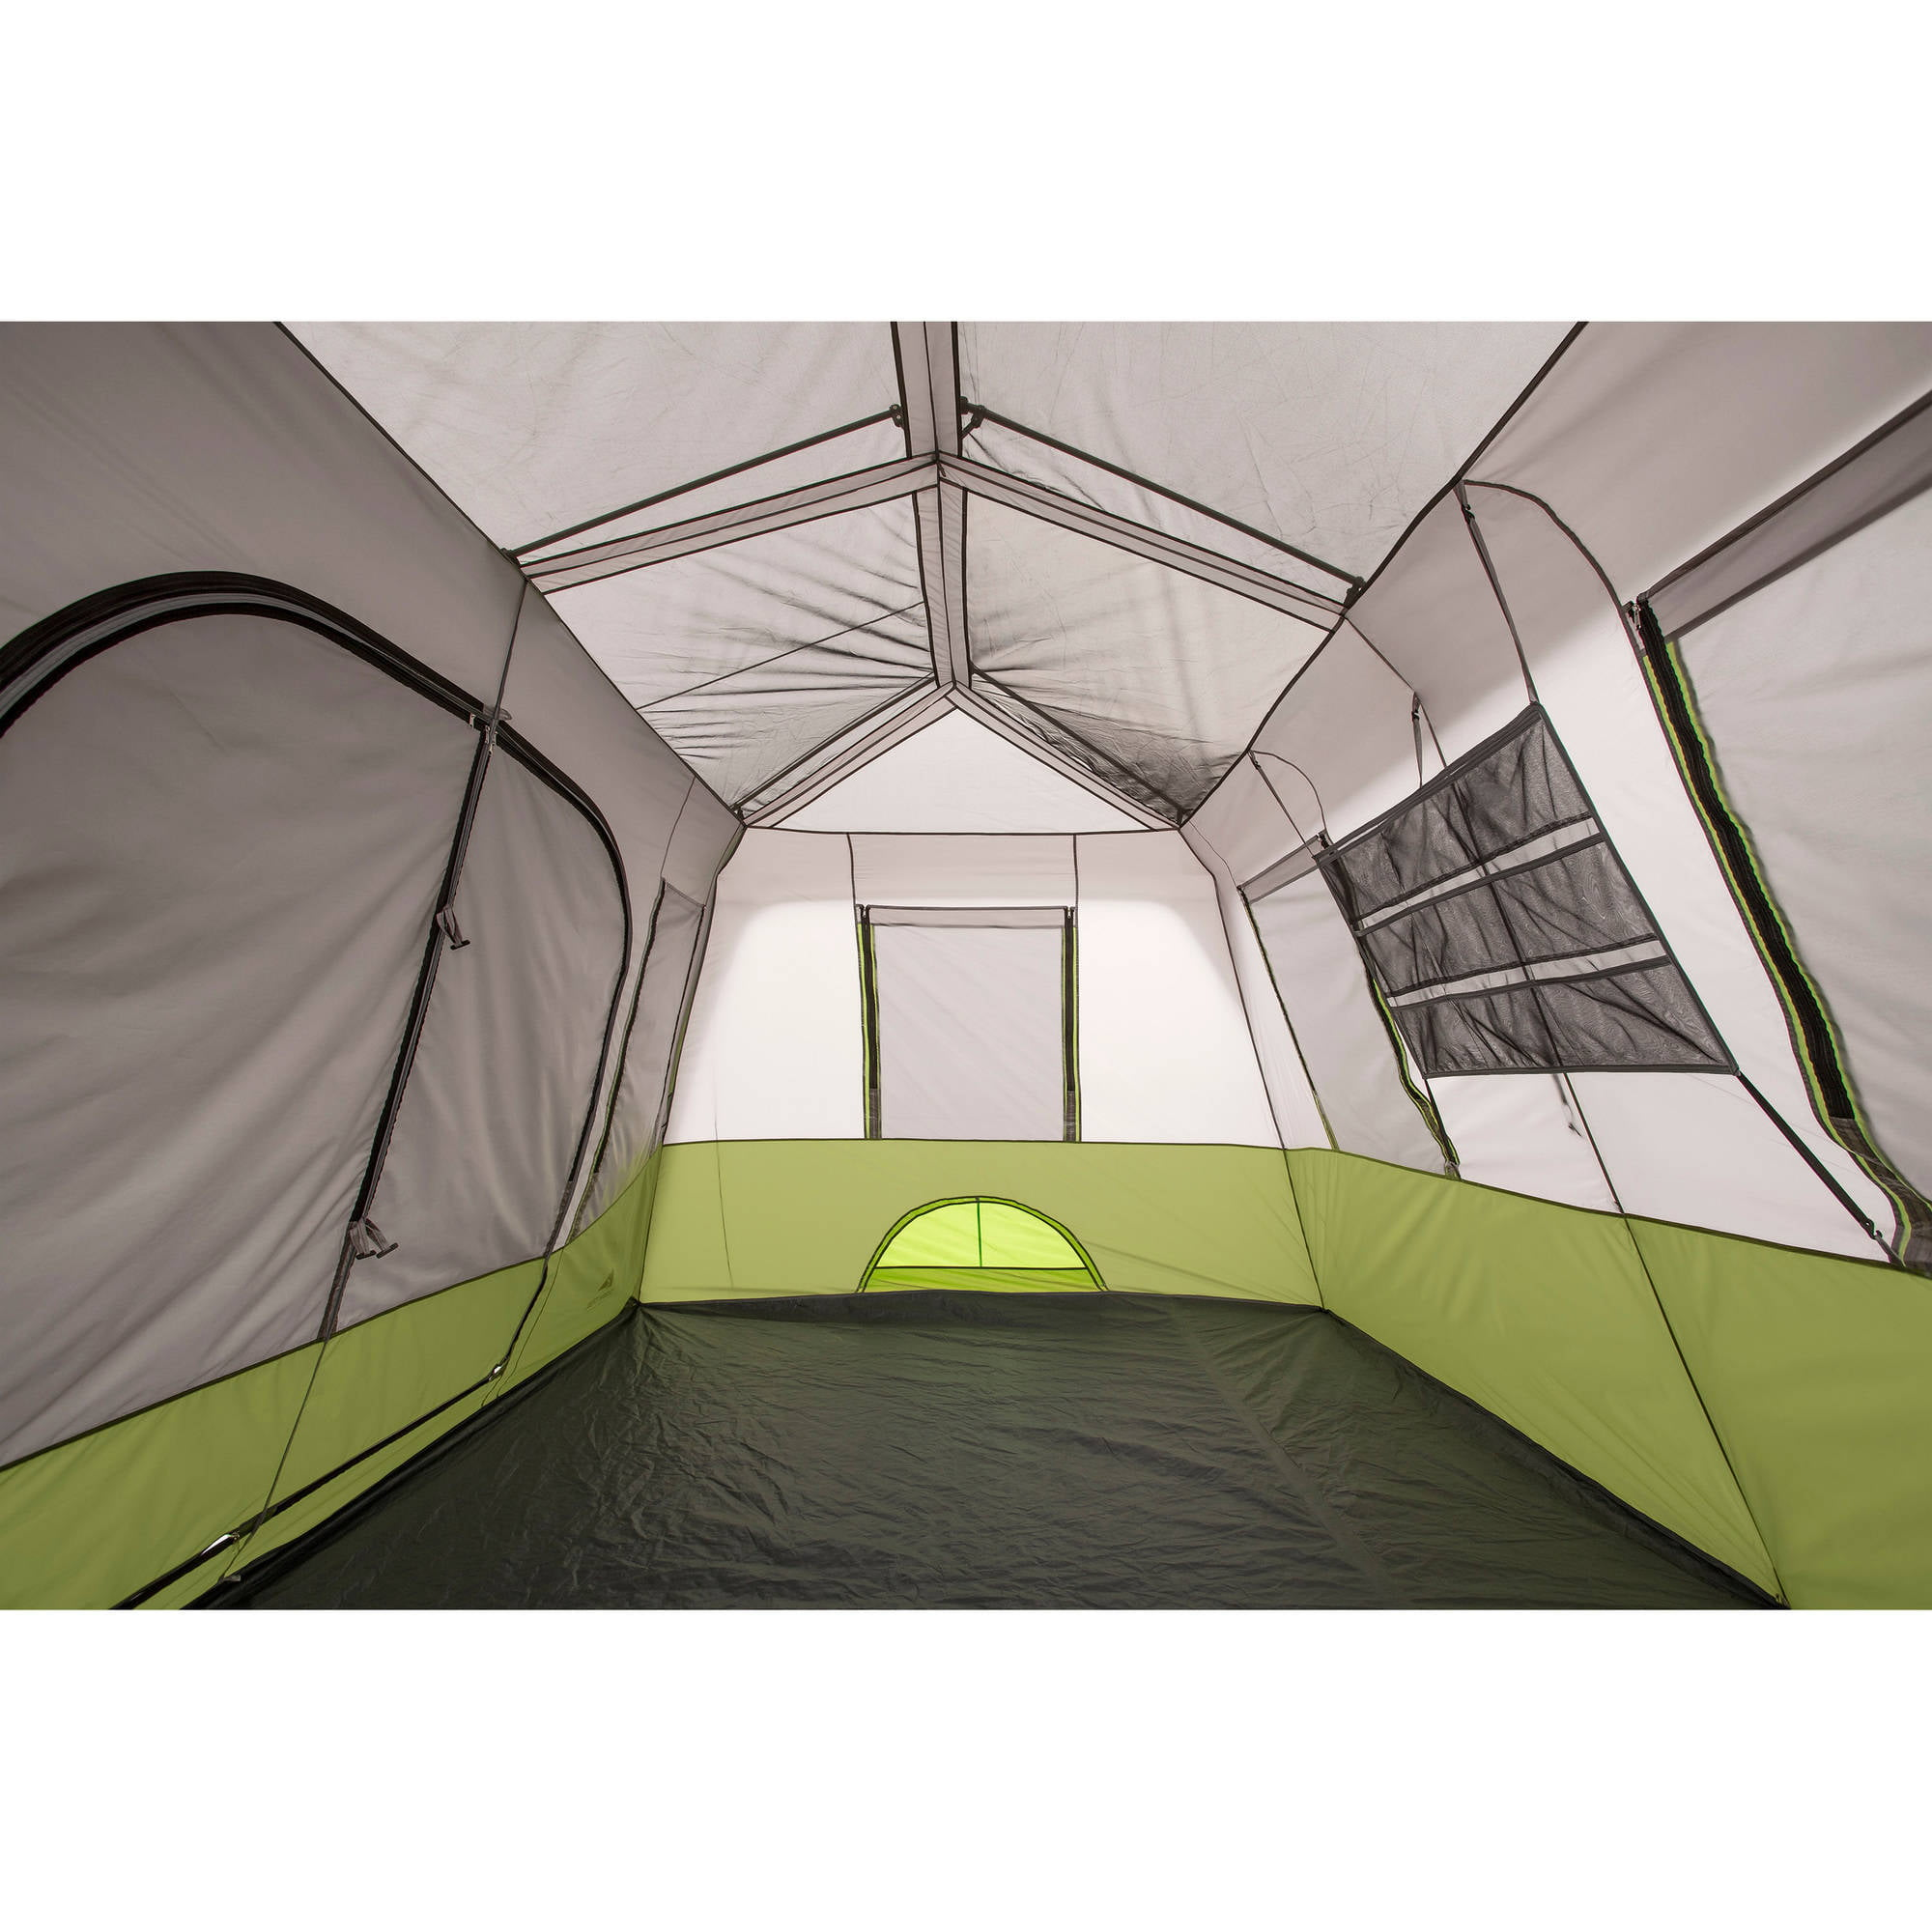 Ozark Trail 9-Person Instant Cabin Tent with 2 Bonus Queen Airbeds Value Bundle - Walmart.com  sc 1 st  Walmart & Ozark Trail 9-Person Instant Cabin Tent with 2 Bonus Queen Airbeds ...